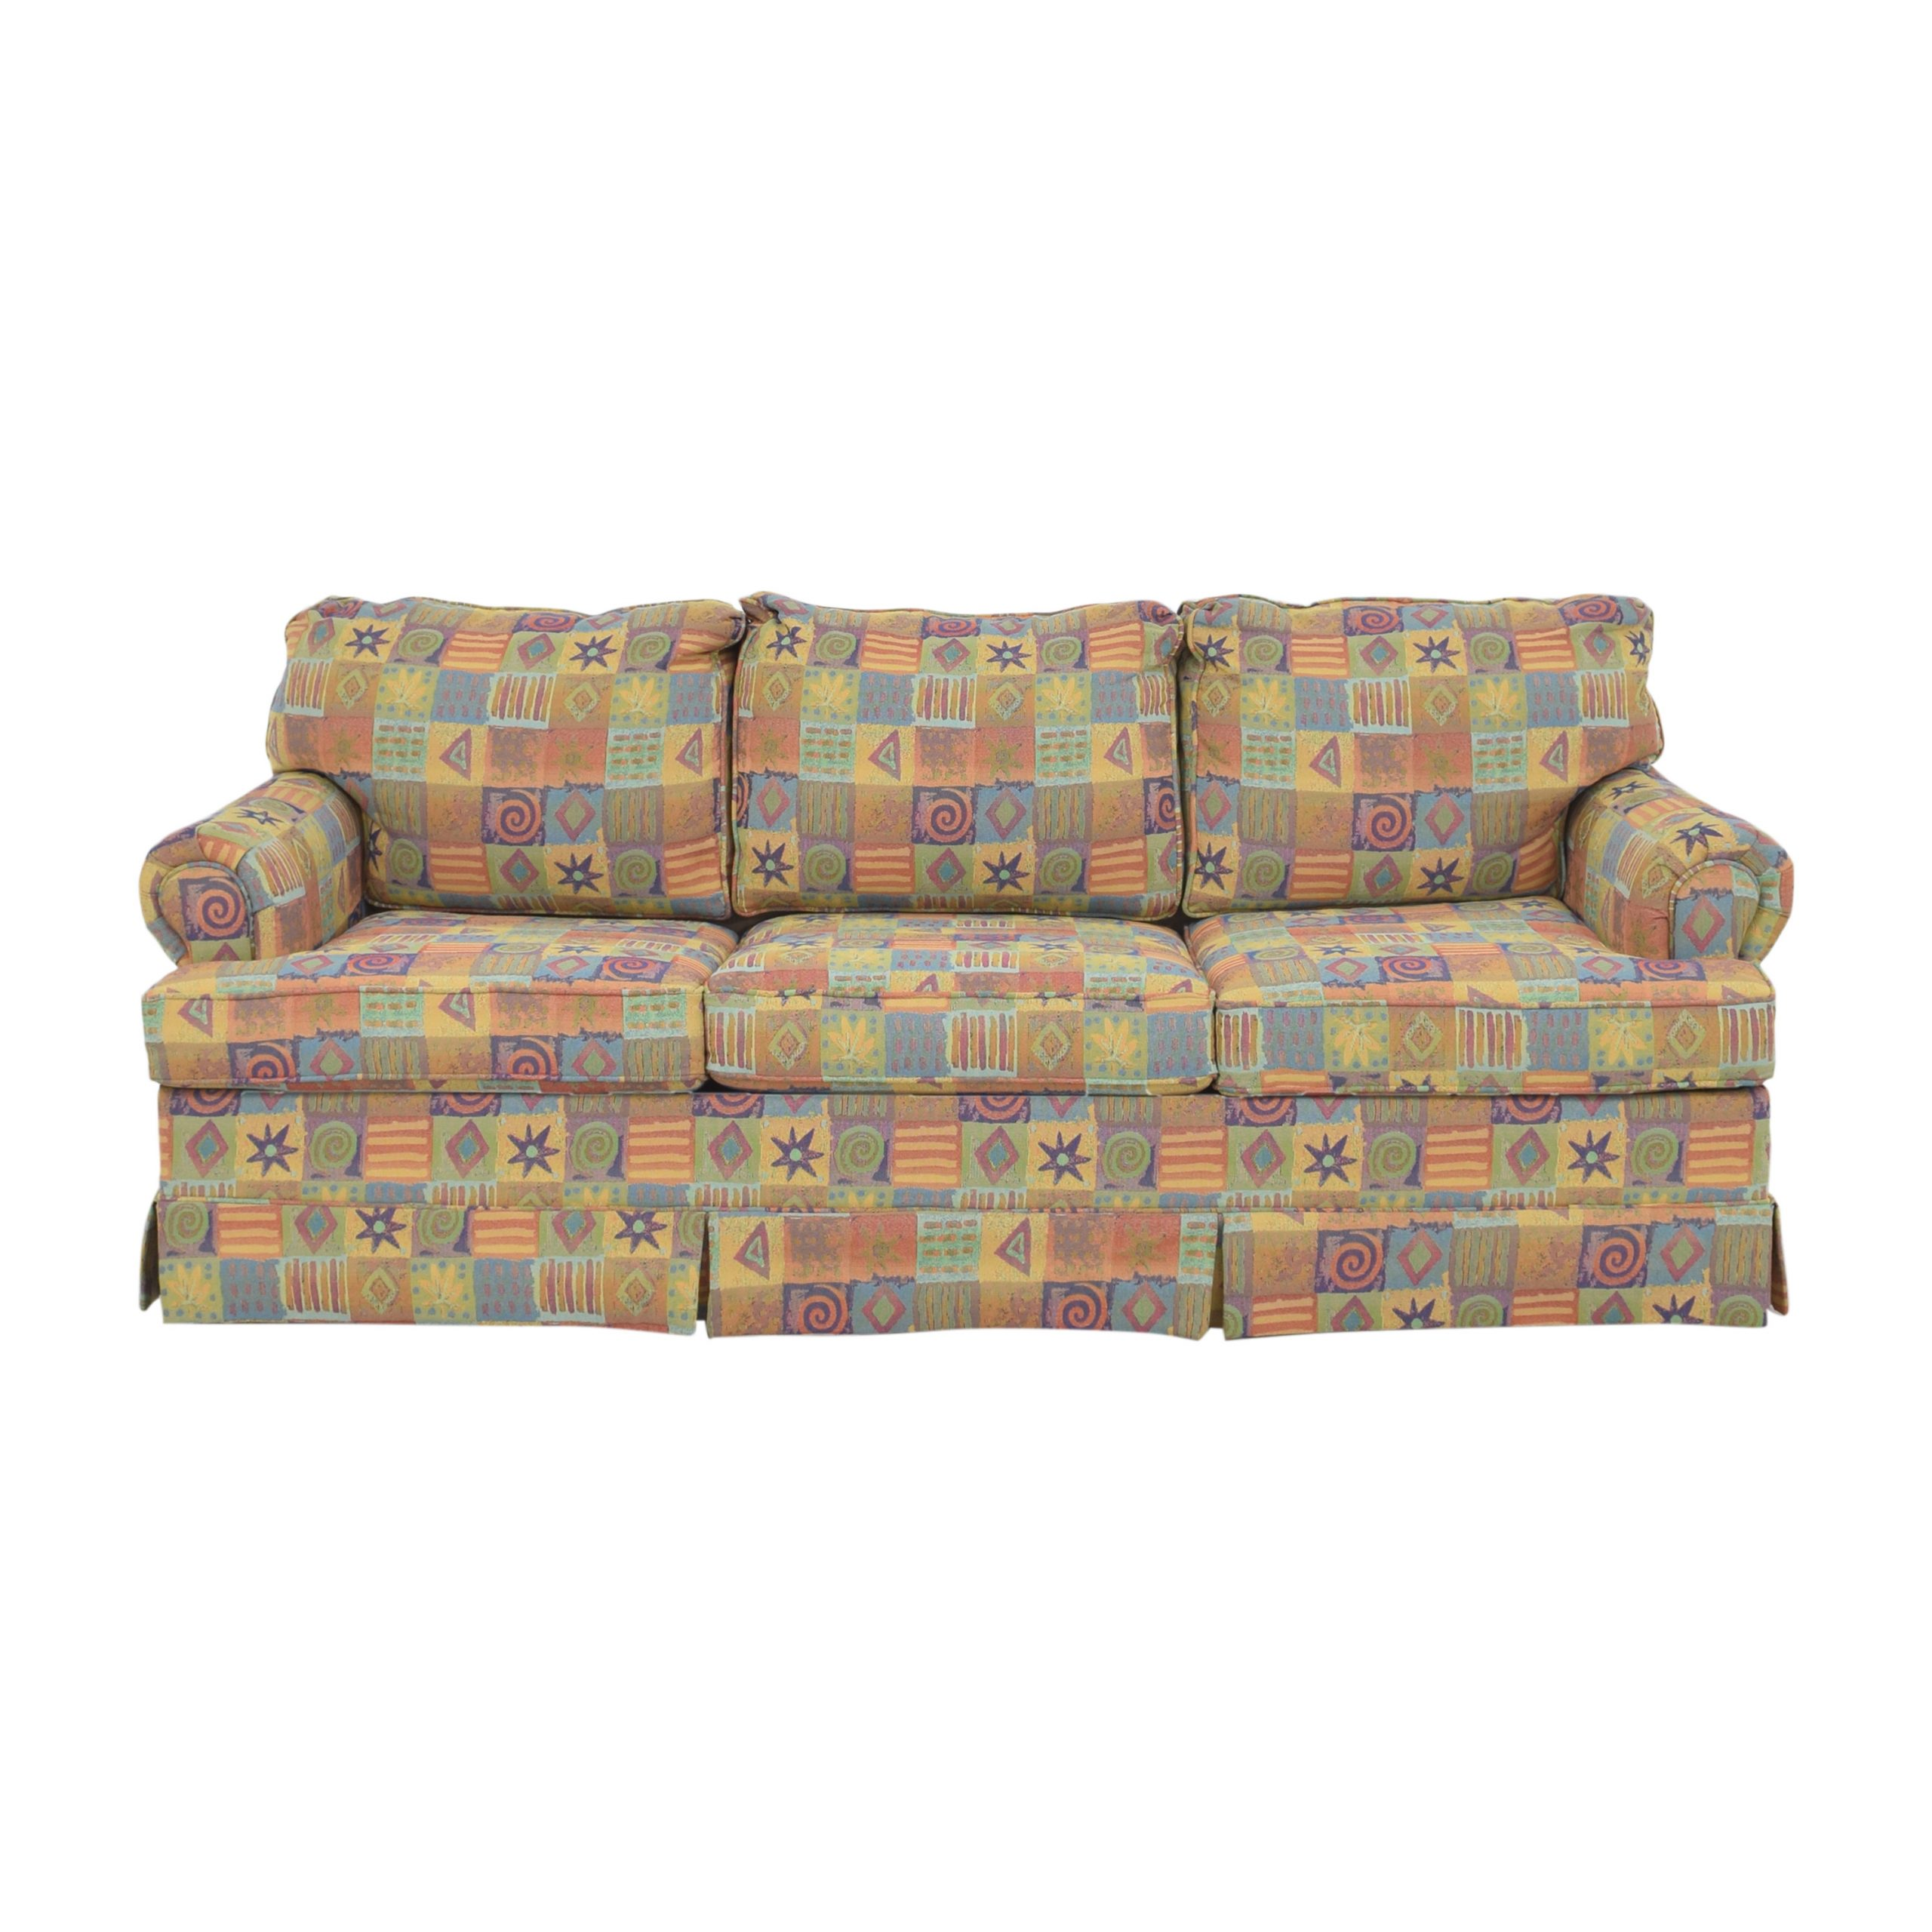 [%77% Off – Multicolor Patterned Sleeper Sofa / Sofas With Regard To 2018 Camila Poly Blend Sectional Sofas Off White camila Poly Blend Sectional Sofas Off White Within Best And Newest 77% Off – Multicolor Patterned Sleeper Sofa / Sofas most Current Camila Poly Blend Sectional Sofas Off White With Regard To 77% Off – Multicolor Patterned Sleeper Sofa / Sofas well Known 77% Off – Multicolor Patterned Sleeper Sofa / Sofas Pertaining To Camila Poly Blend Sectional Sofas Off White%] (View 10 of 20)